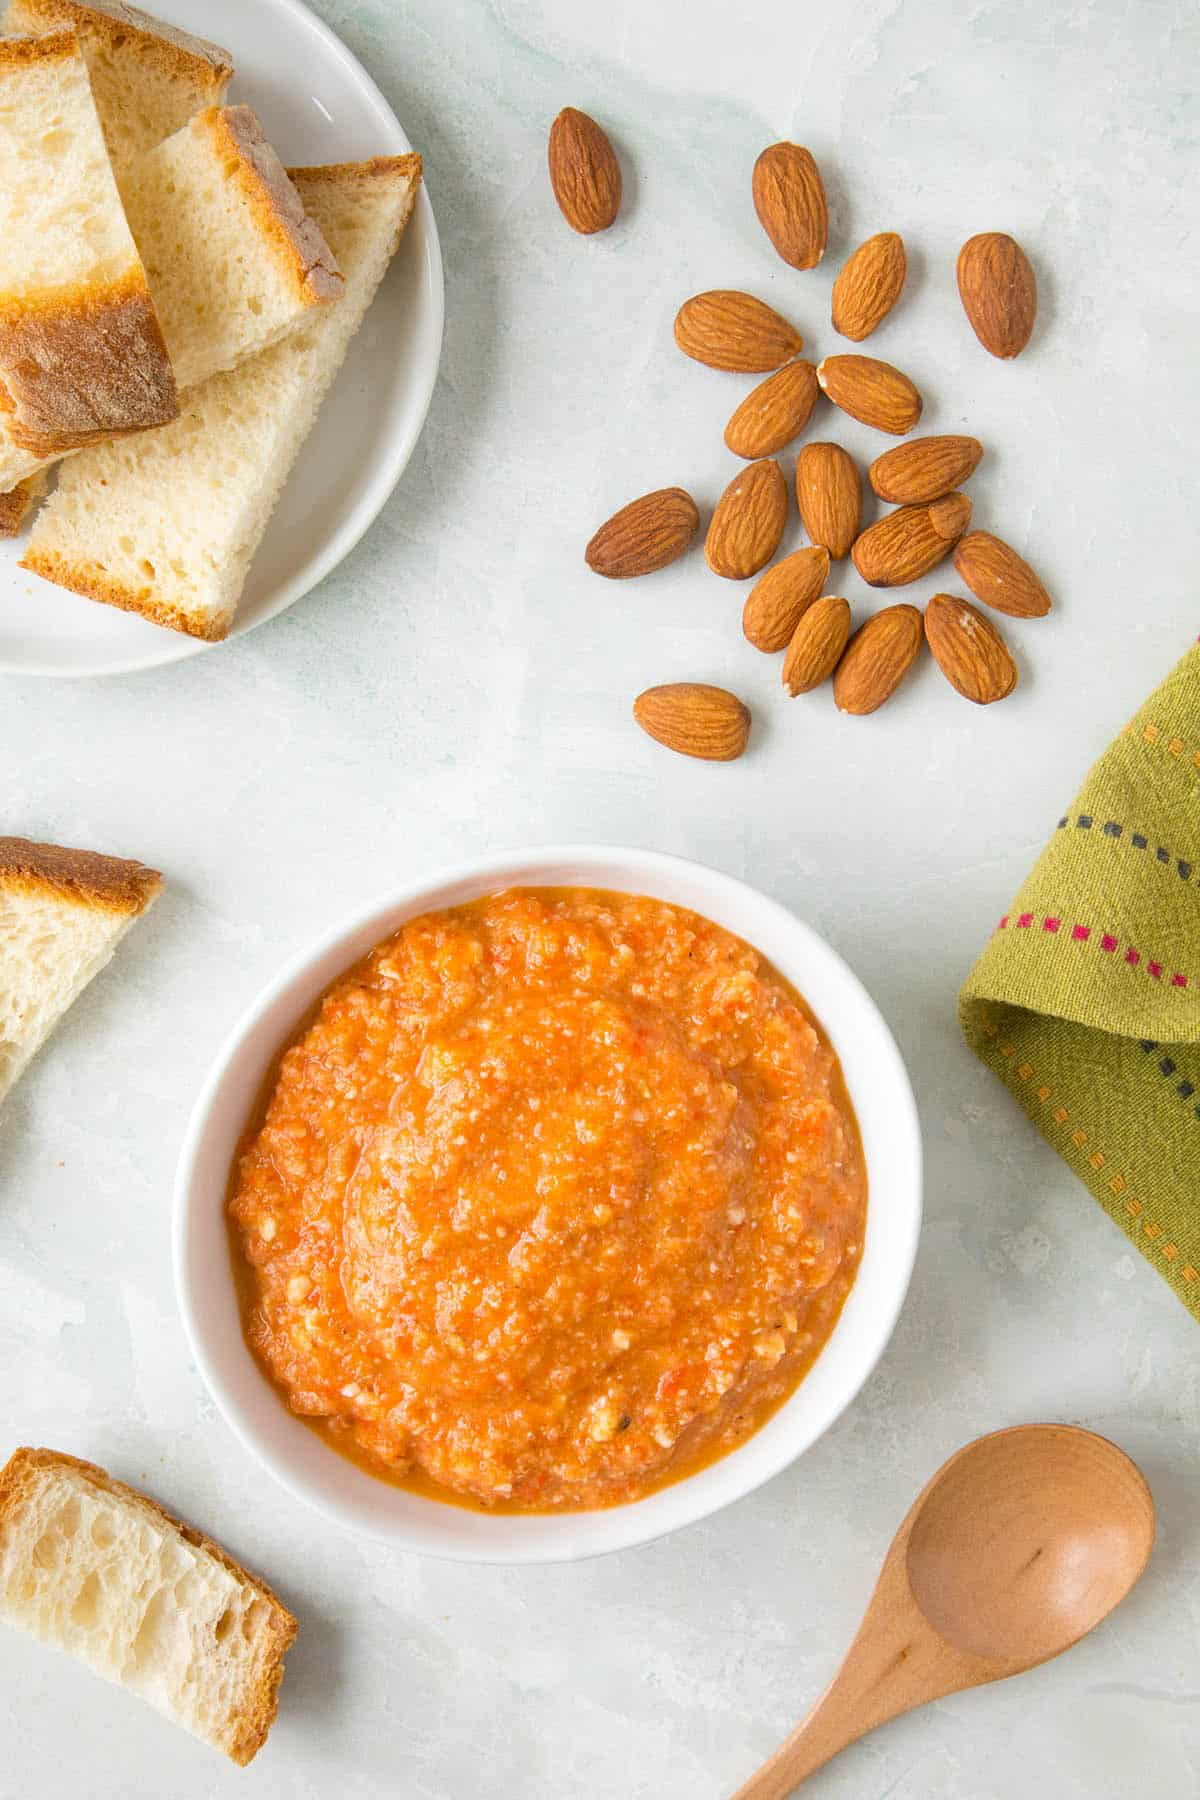 Romesco Sauce - In a bowl, ready to serve